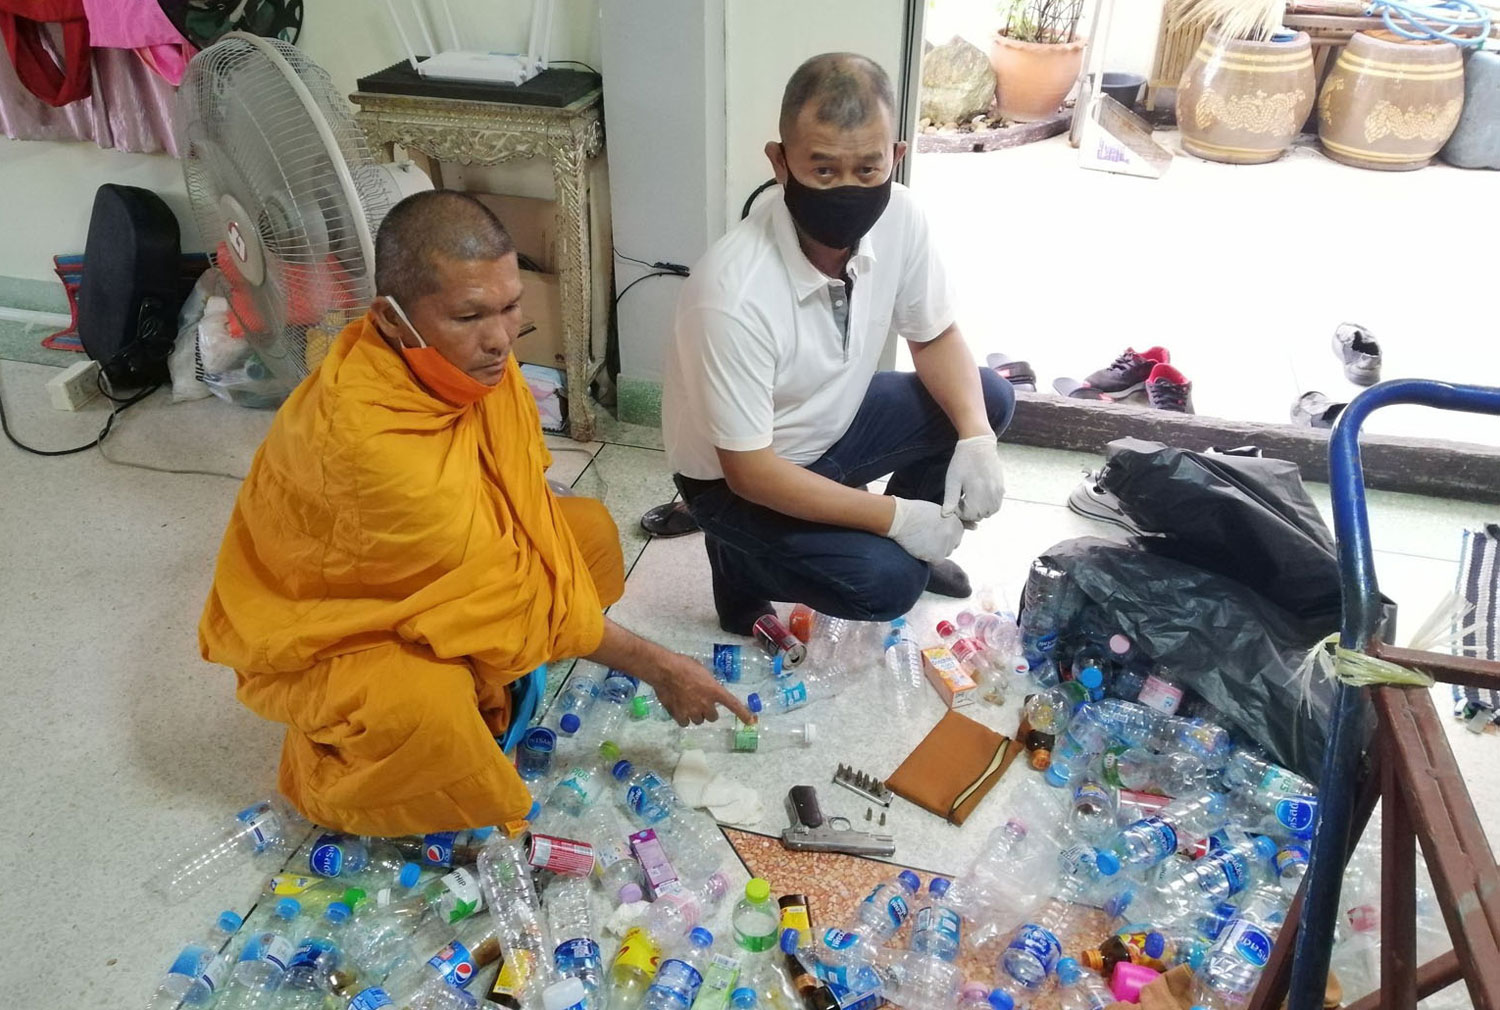 Phra Apiram Ruengthip, 46, a monk at Wat Mongkhol Nimit in Bang Sao Thong district of Samut Prakan, shows police the gun he hid in a bag plastic bag containing empty bottles following his arrest on charges of attempted murder of a layman living at the same temple. (Photo by Sutthiwit Chayutworakan)